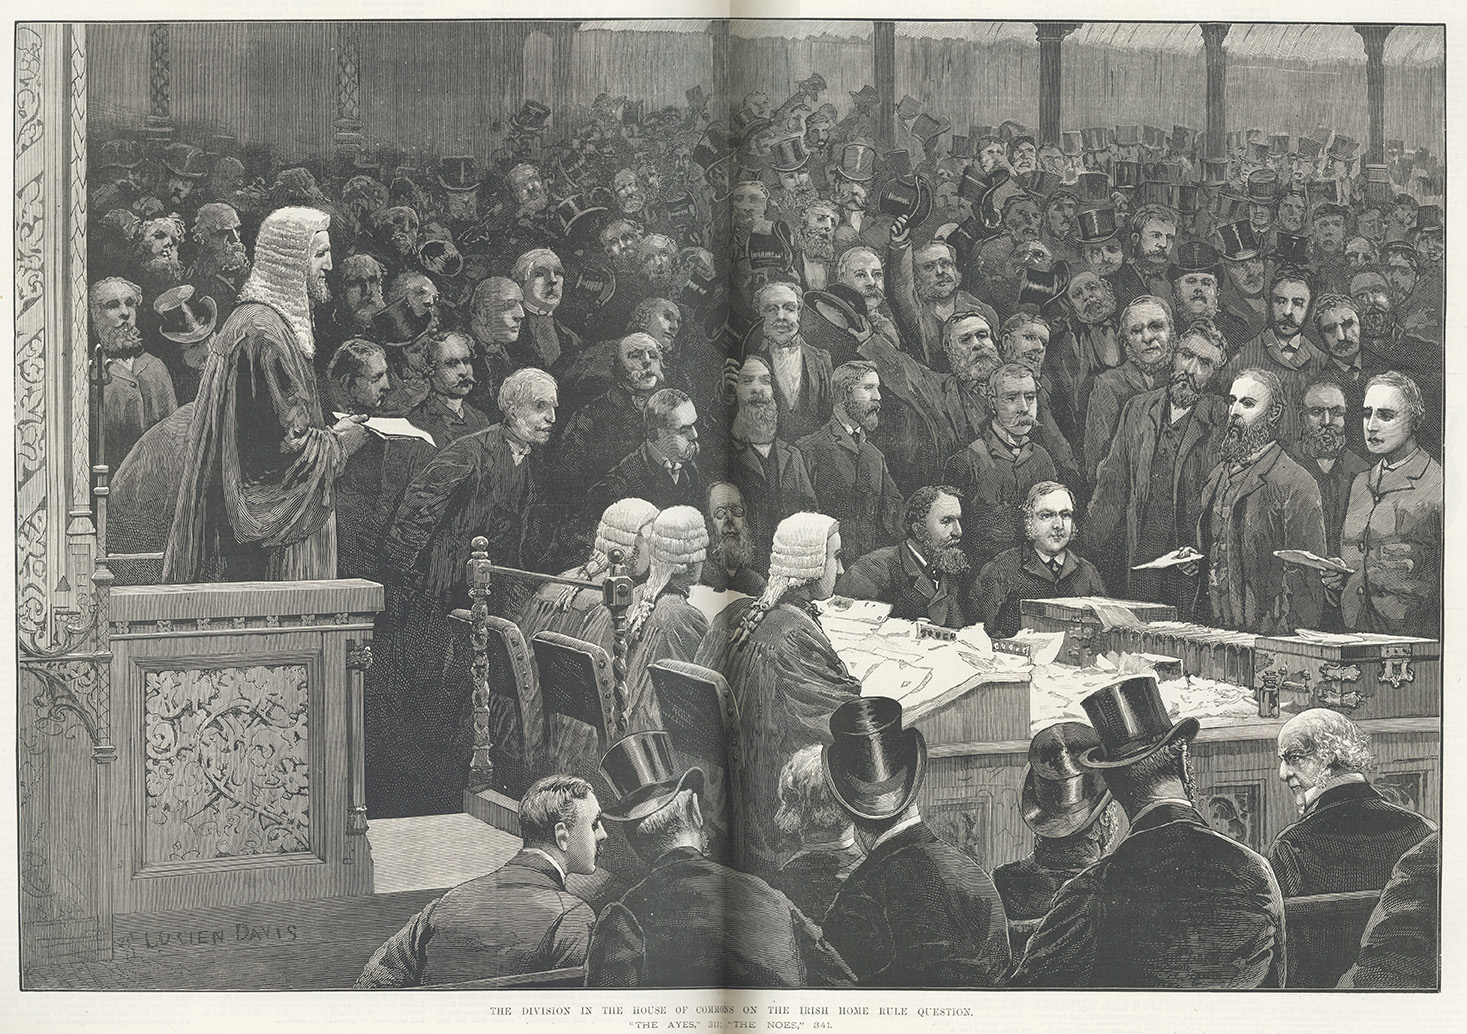 'The division in the House of Commons on the Irish Home Rule question'